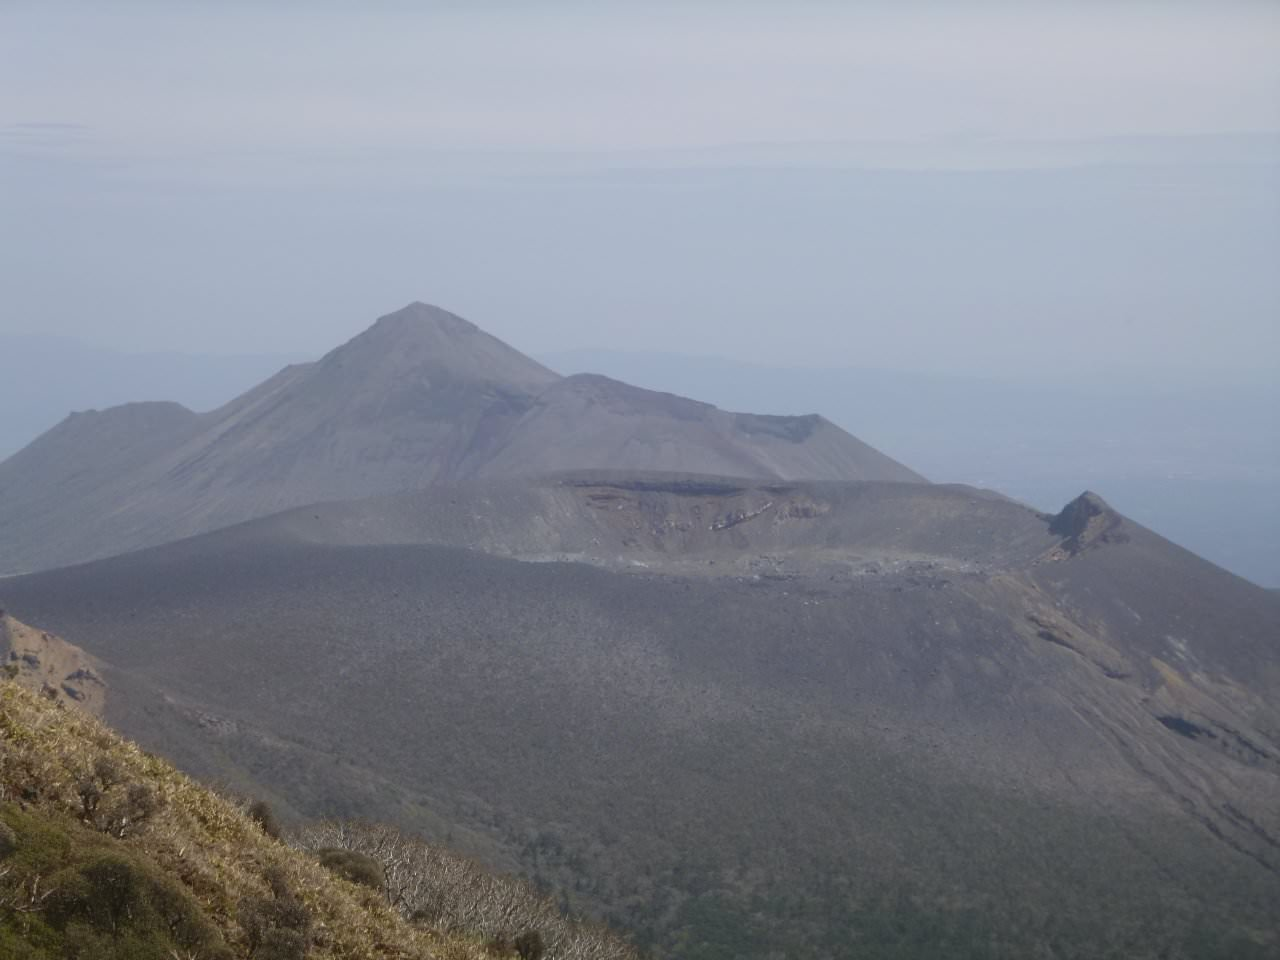 Picture shows Shinmoedake Volcano (front) & Takachihonomine Volcano, in Kirishima National Park